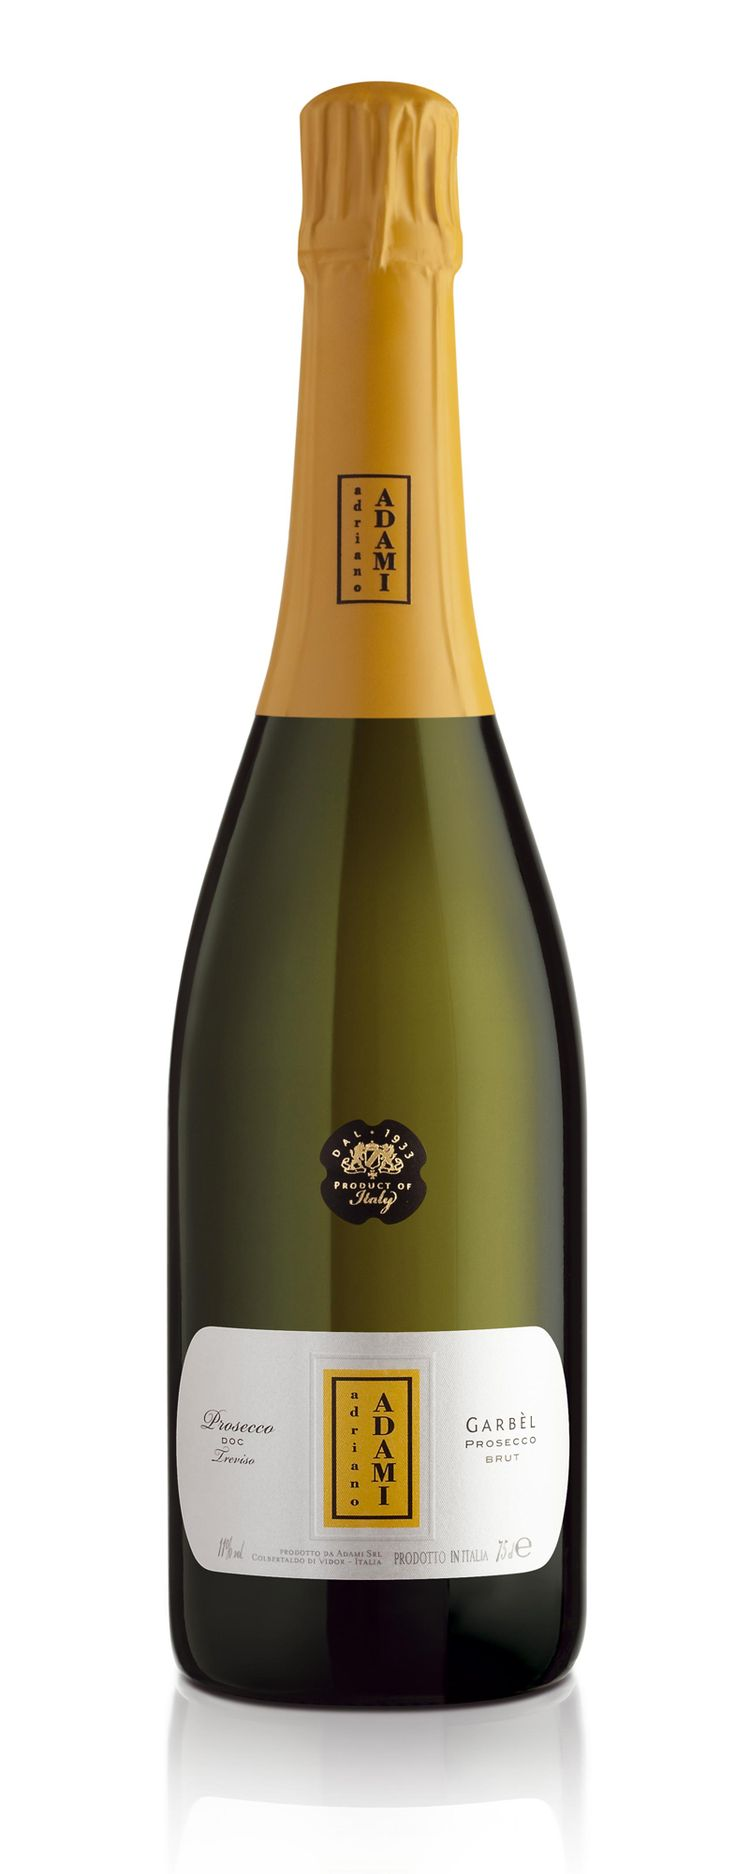 adami prosecco theyu0027re italians and theyu0027re control freaks the result italyu0027s finest bubbly wine